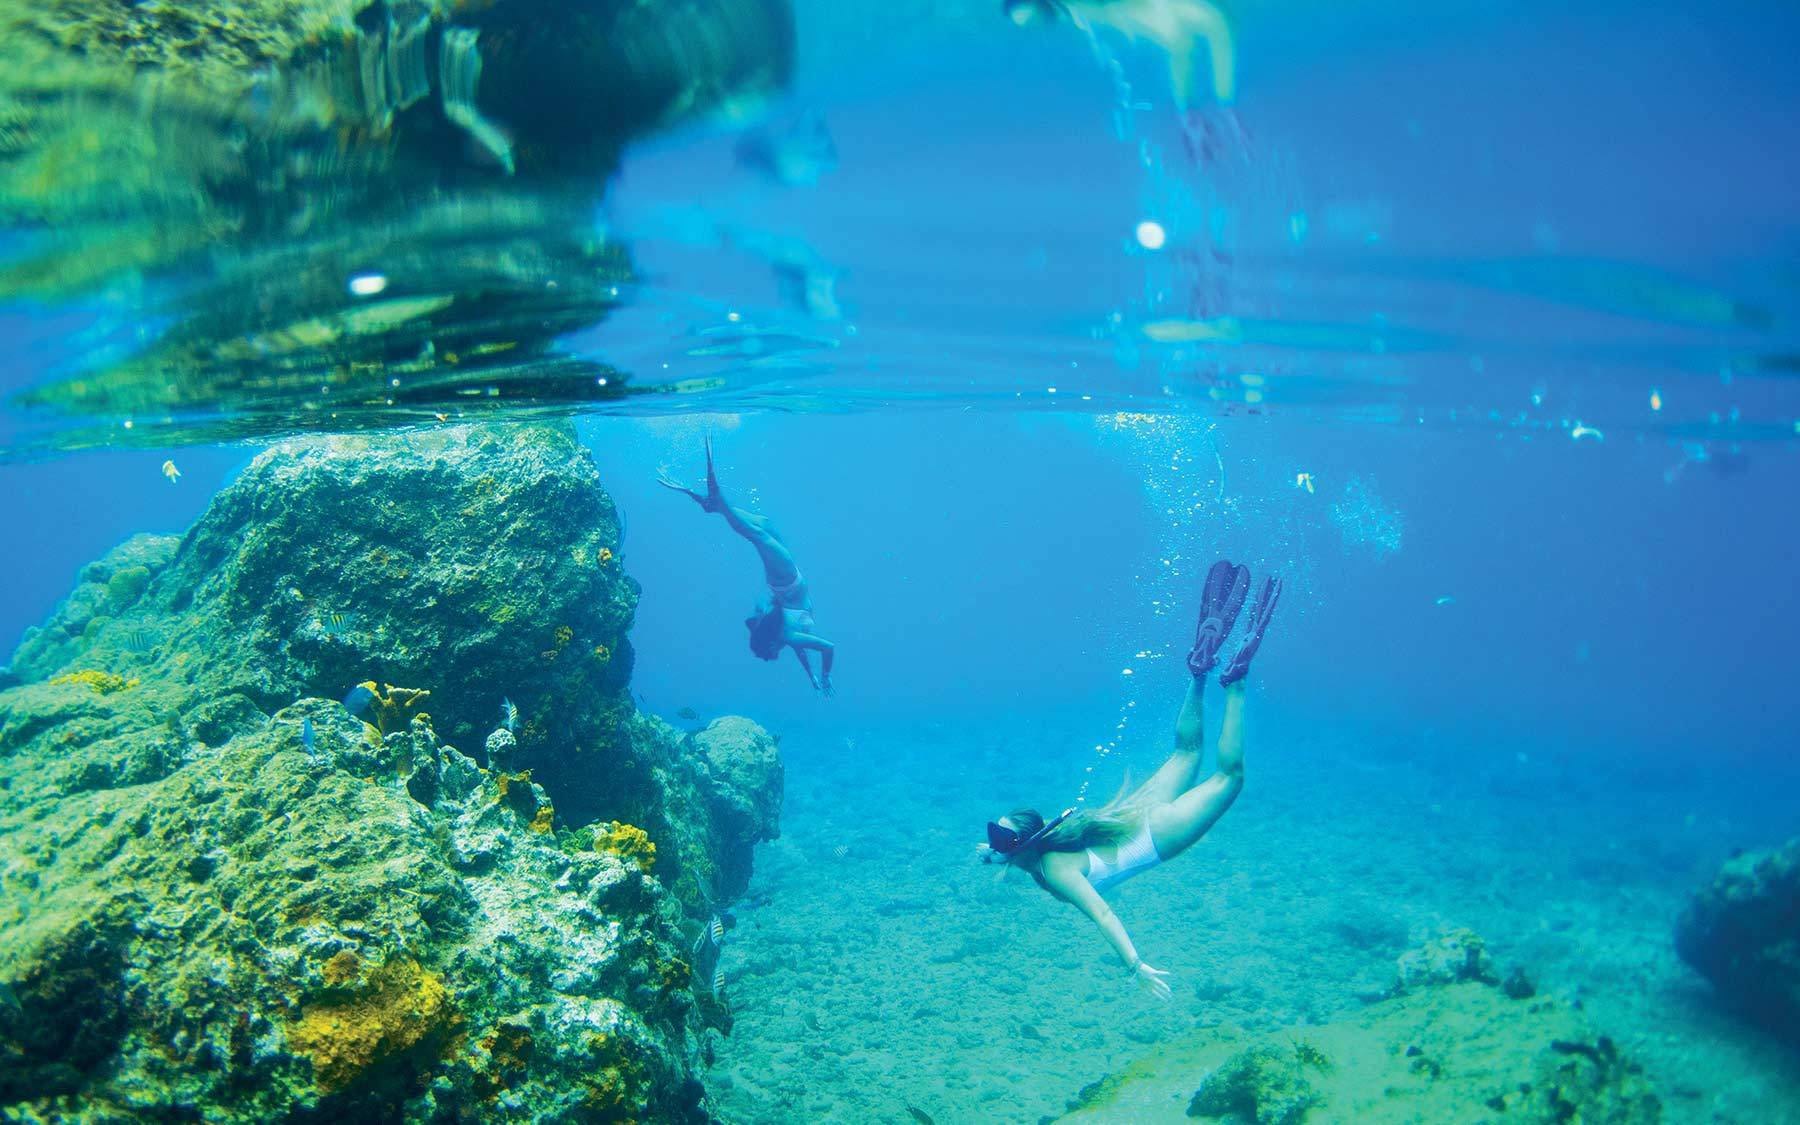 Background image - swimmers diving in a reef